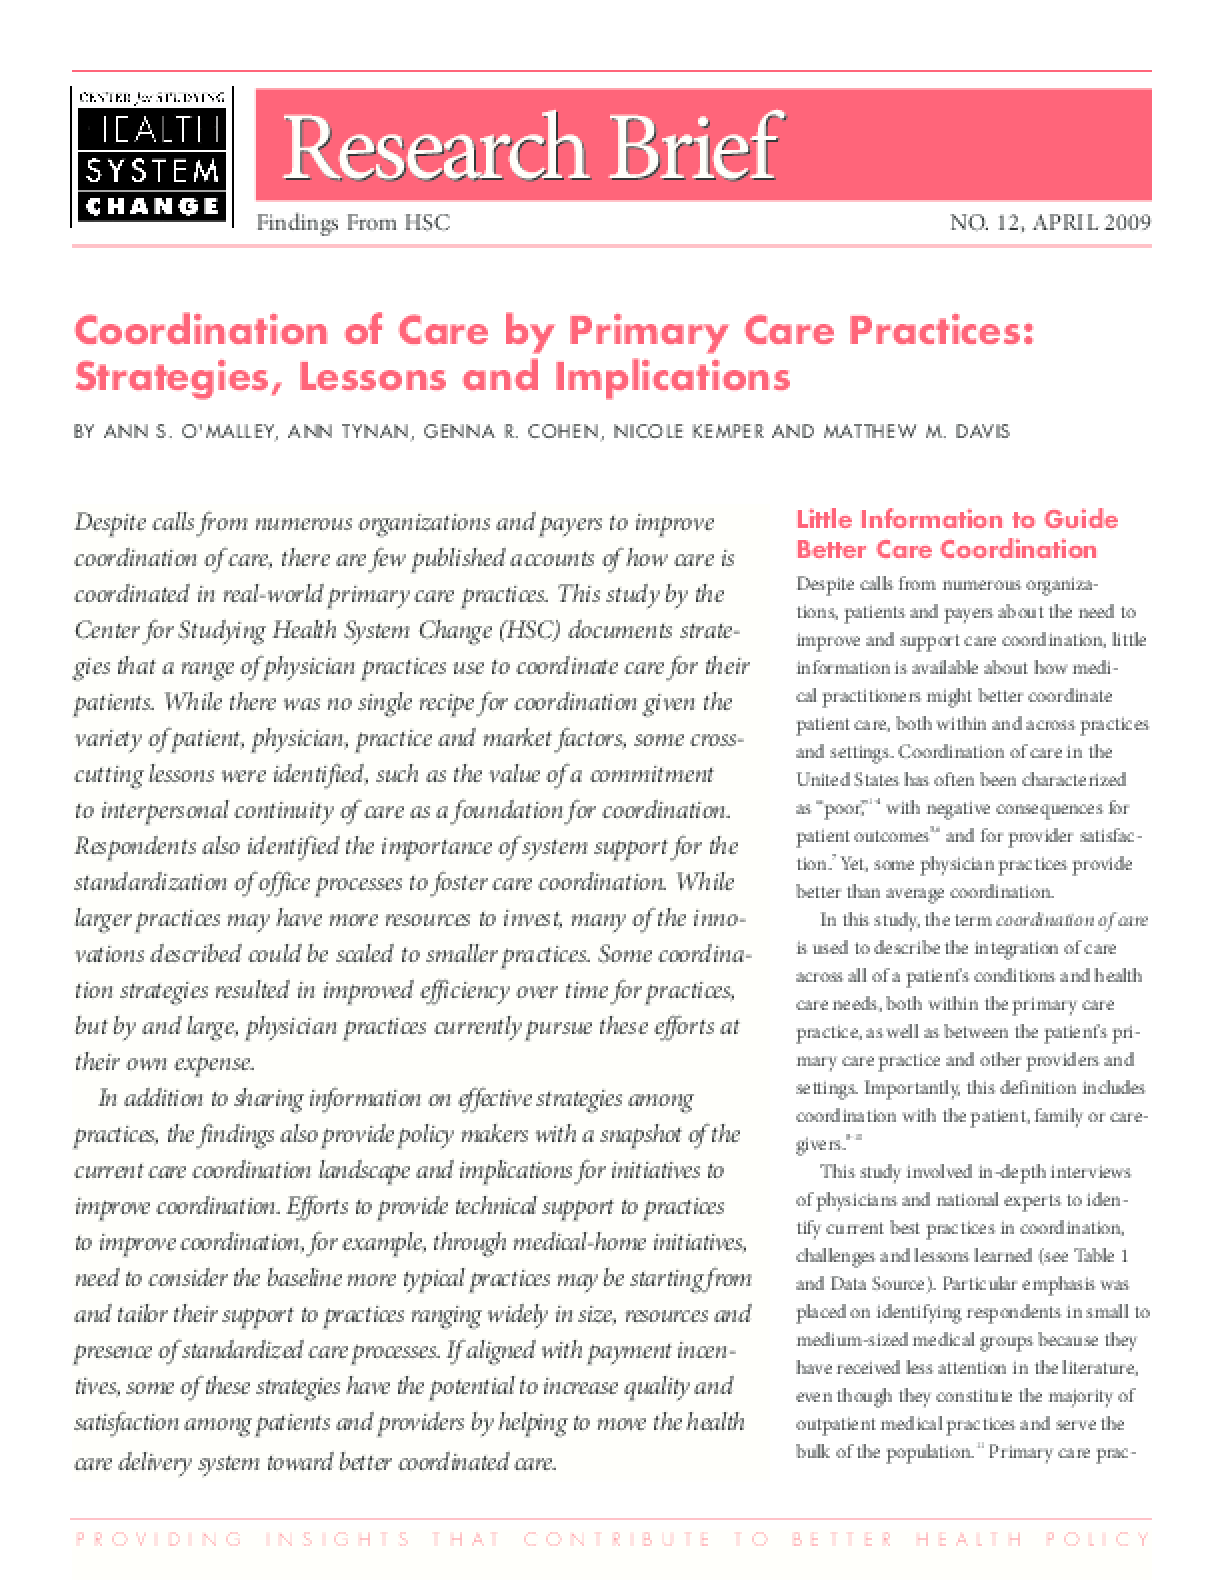 Coordination of Care by Primary Care Practices: Strategies, Lessons and Implications